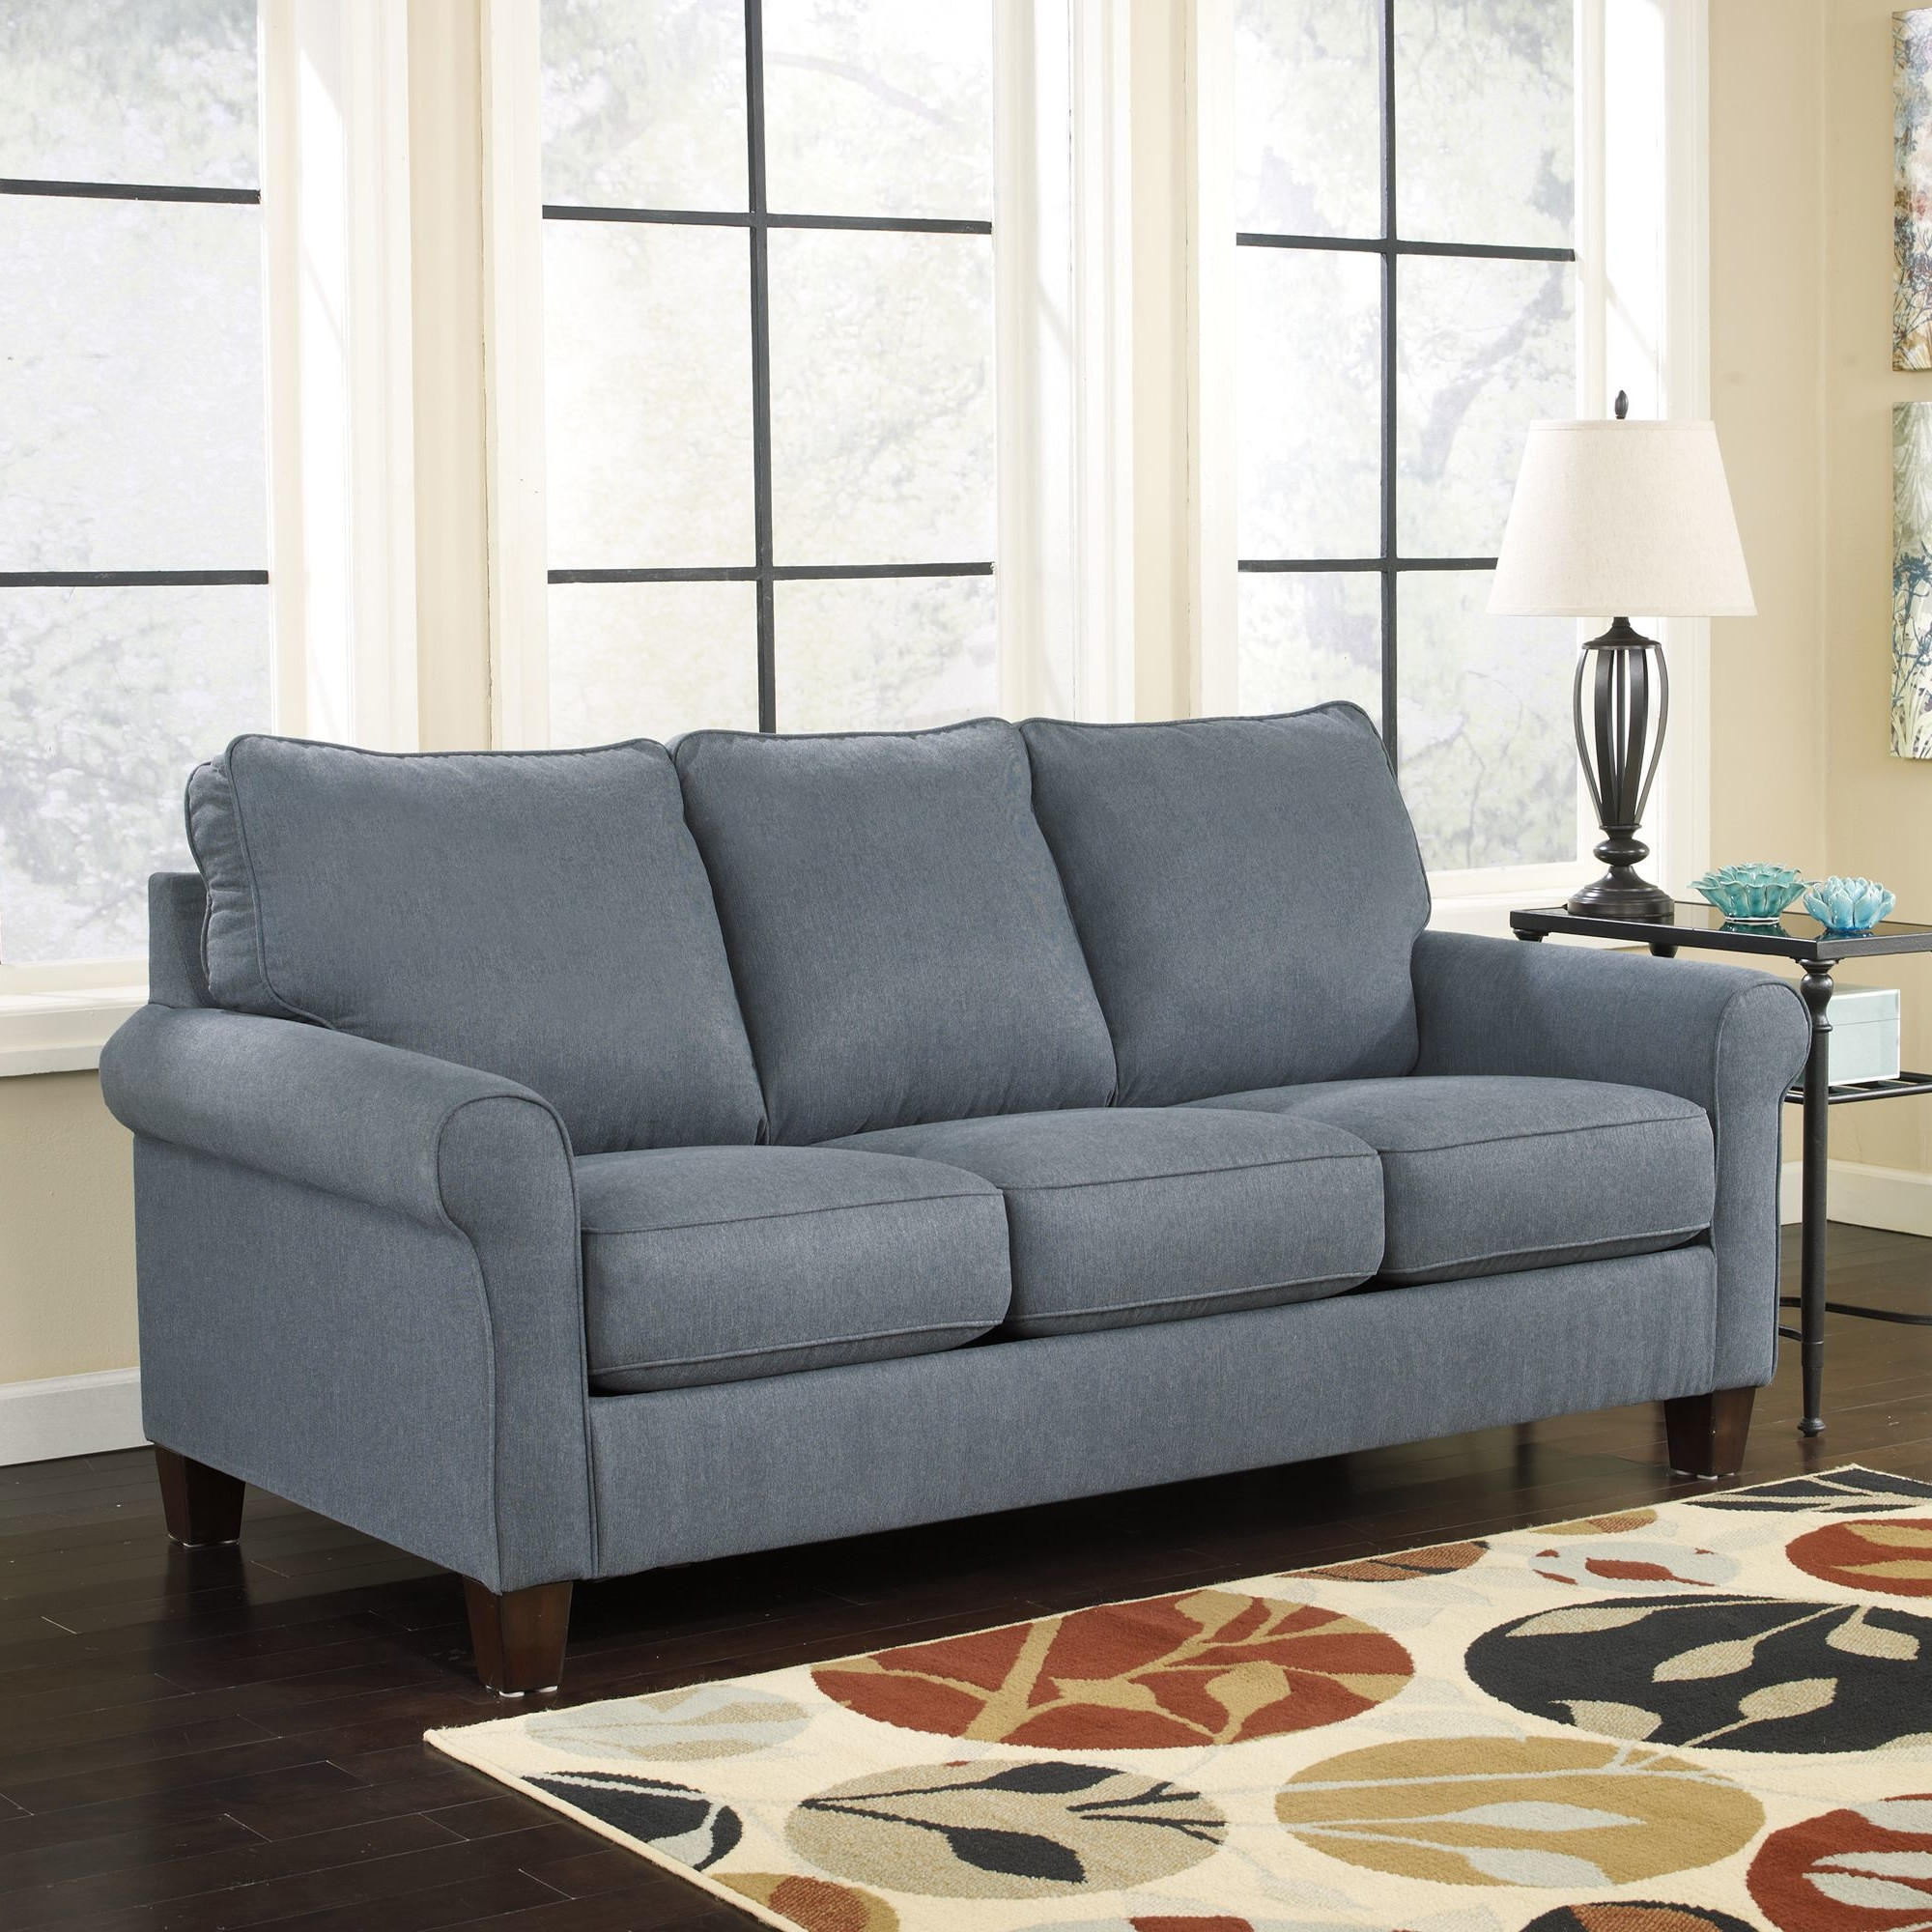 70 inch sofa sofa design ideas perfect covering dark blue for Wide couches